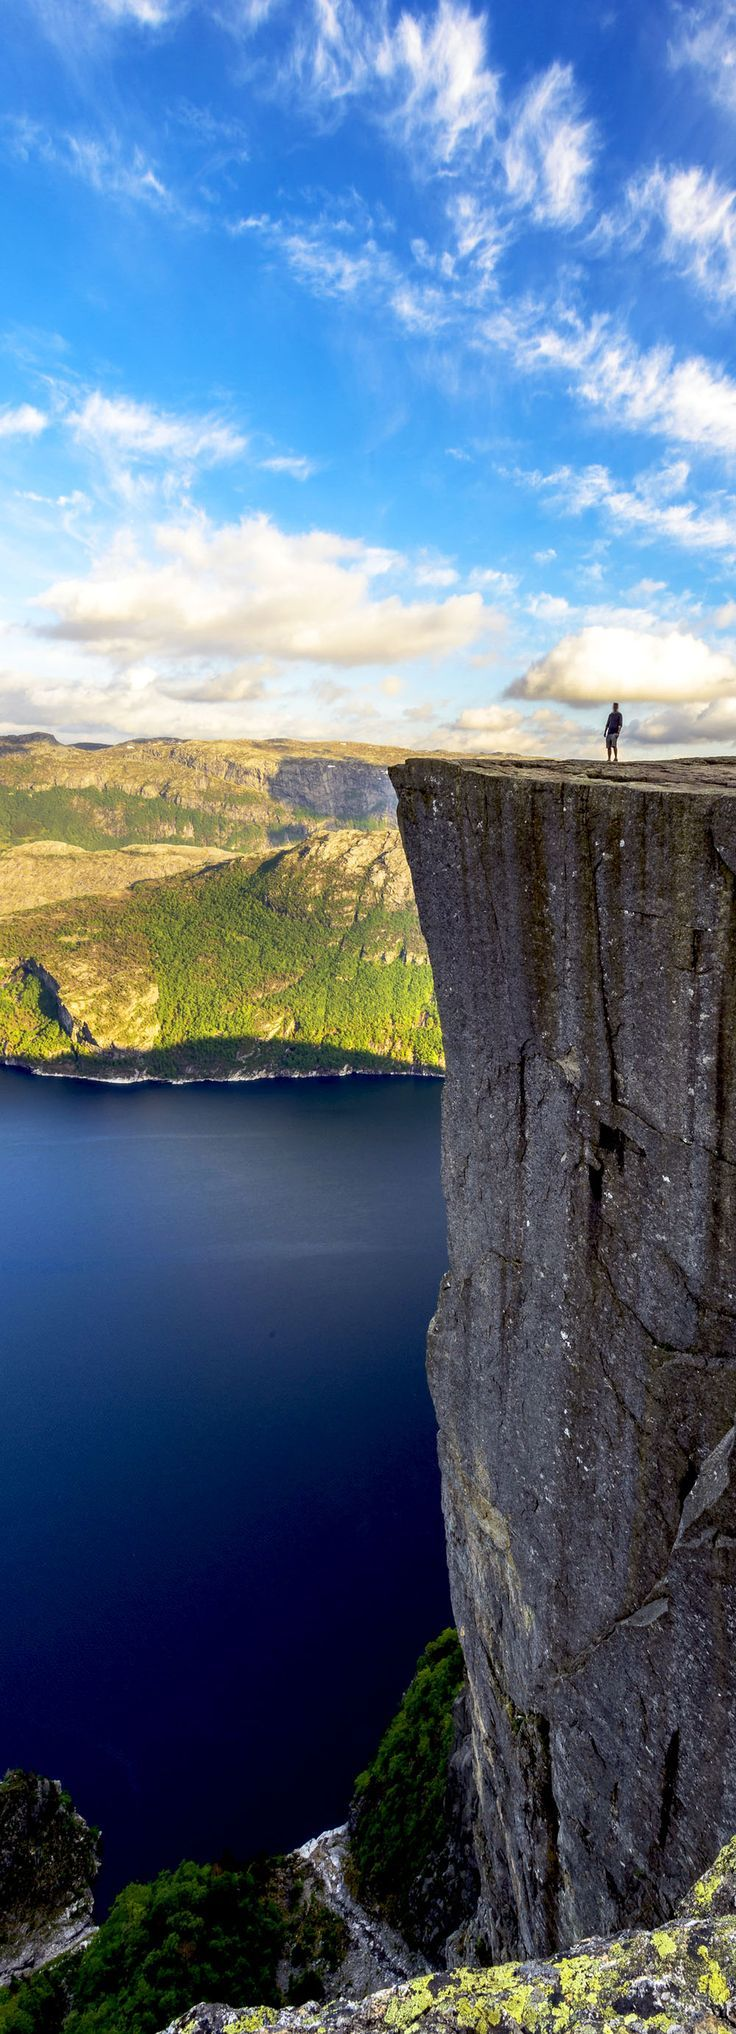 These towering lookouts are some of the most beautiful viewing platforms around the world designed (by nature or man) to give you epic views of fjords, falls, cities, forests and an occasional vertigo or two:)  THE MOST TERRIFYINGLY BEAUTIFUL VIEWING PLATFORMS AROUND THE WORLD